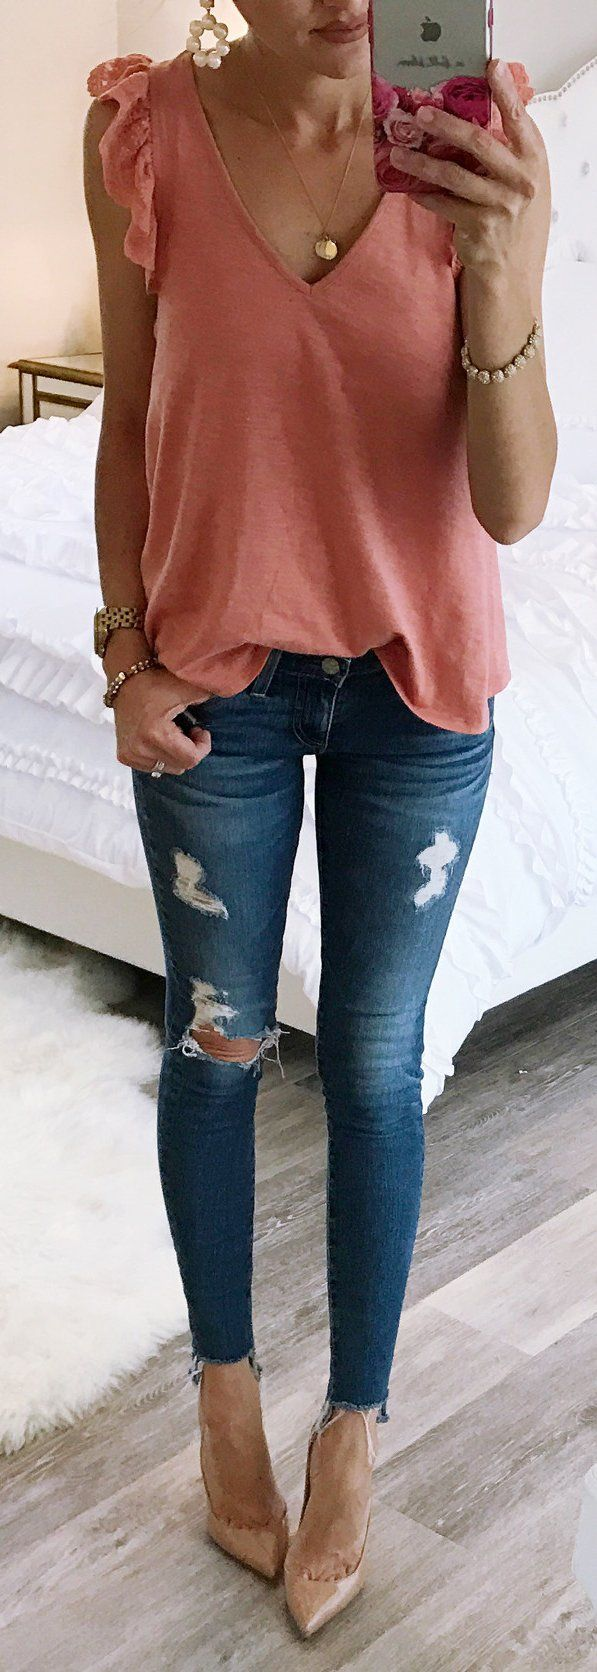 #summer #outfits  Pink Ruffle Tank + Ripped Skinny Jeans + Nude Pumps